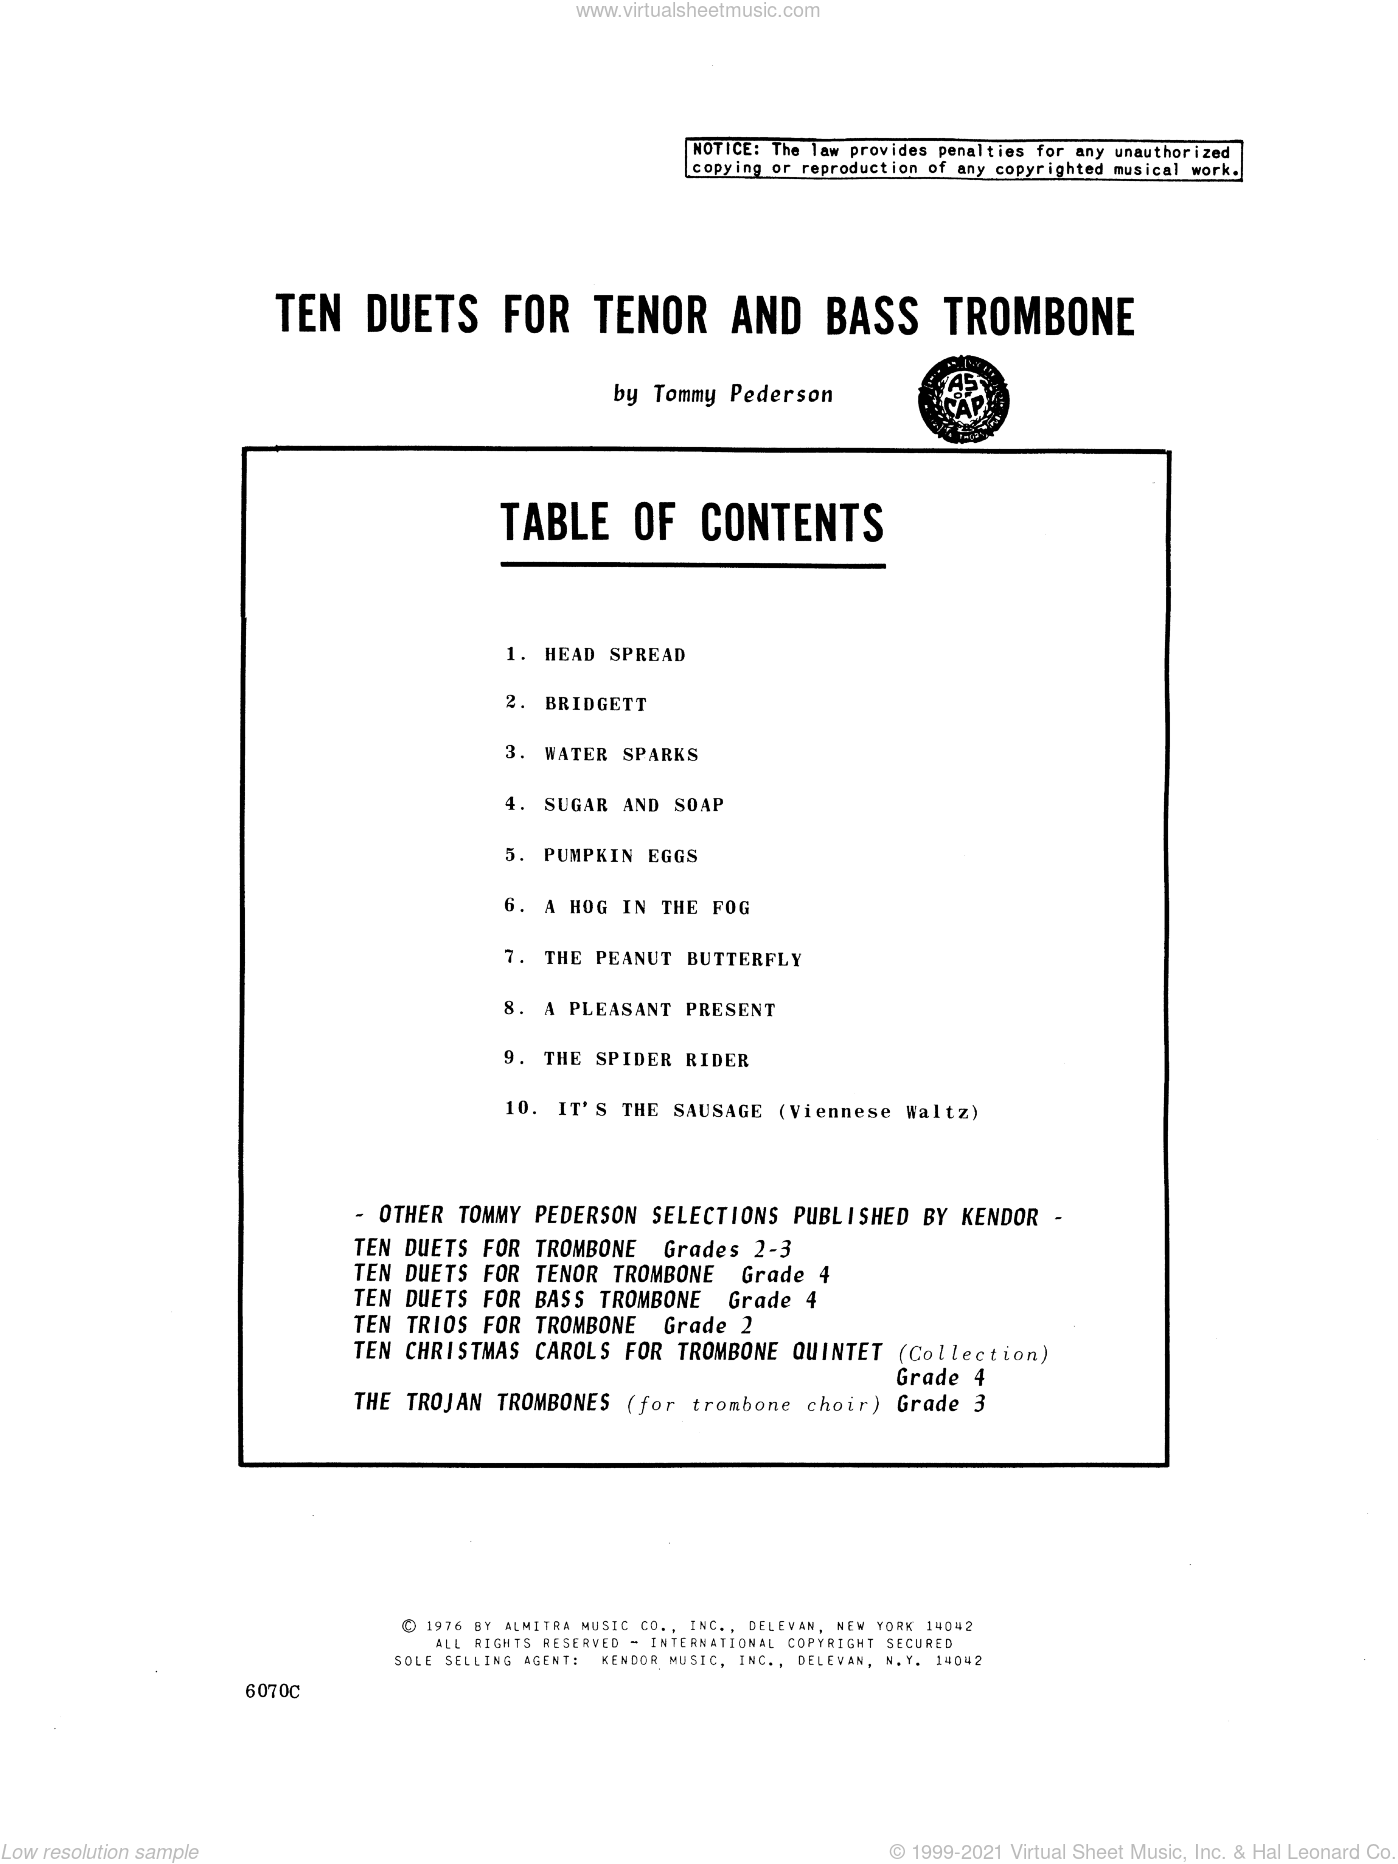 Ten Duets For Tenor And Bass Trombone sheet music for two trombones by Pederson. Score Image Preview.